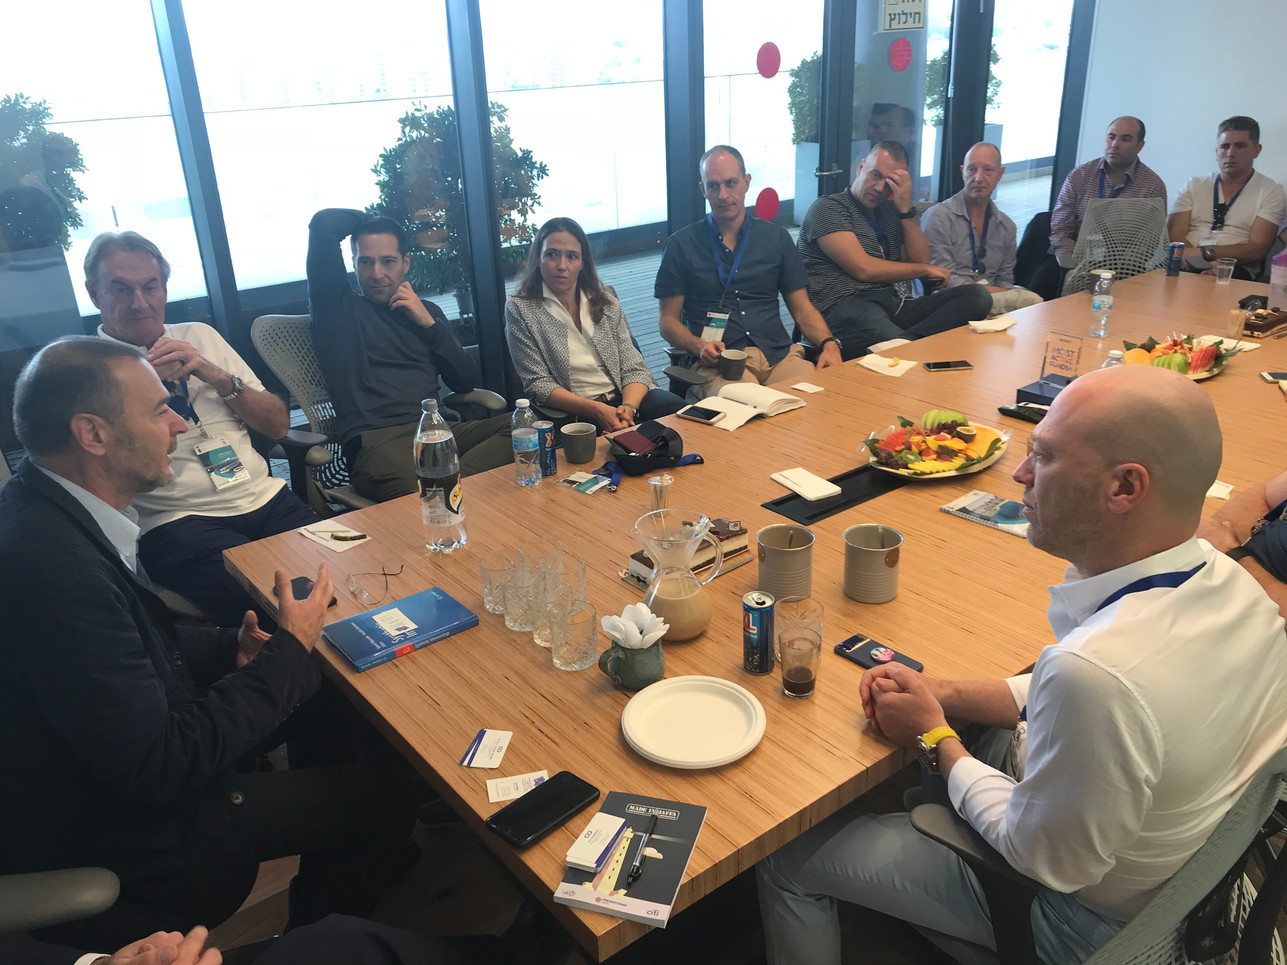 Marius Nacht, Founder- aMoon meets CVS Lane delegation led by Josh Liberman